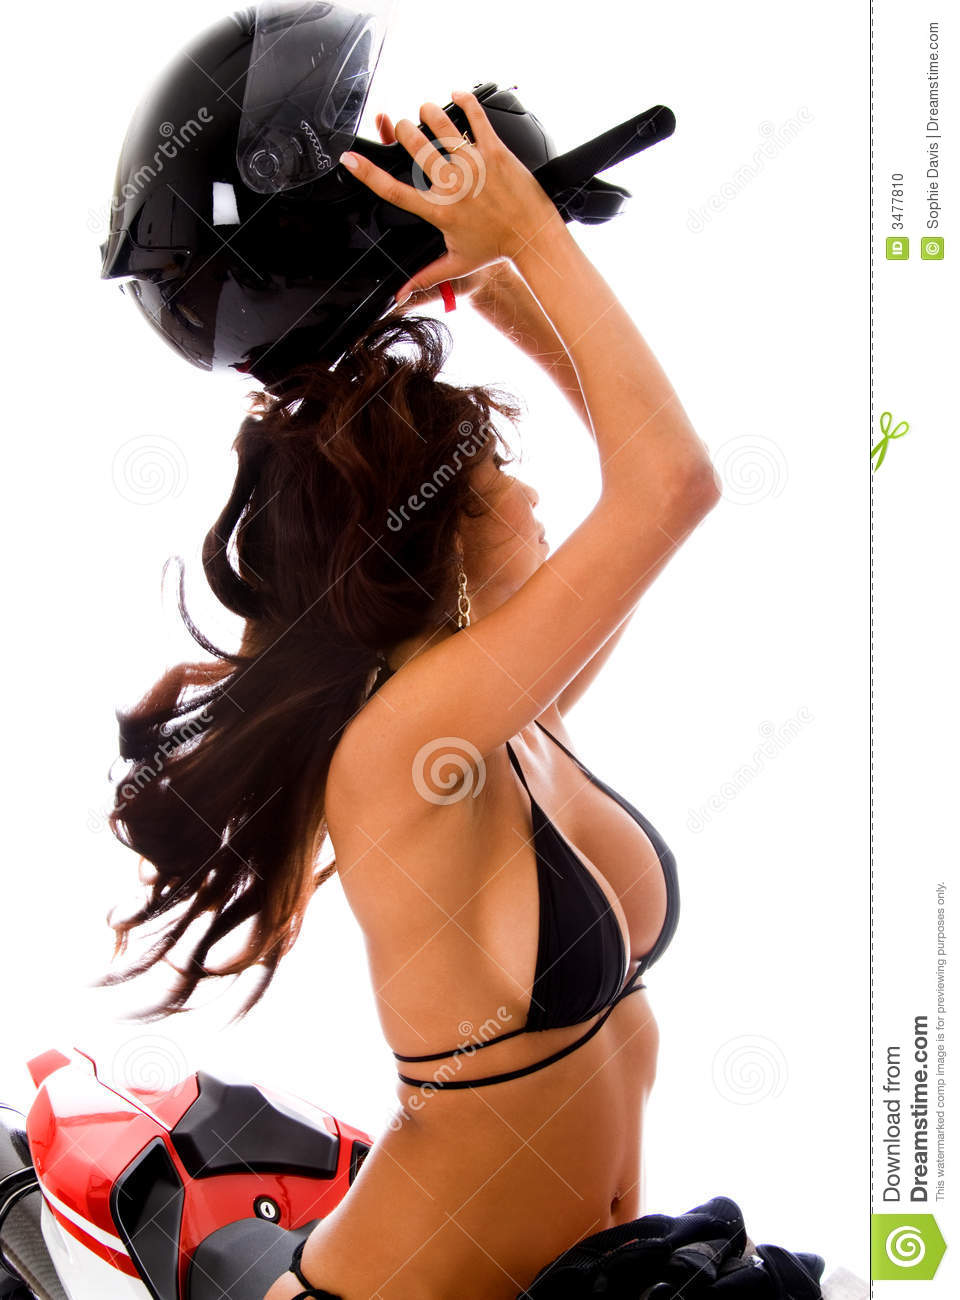 latina in motorcycle helm